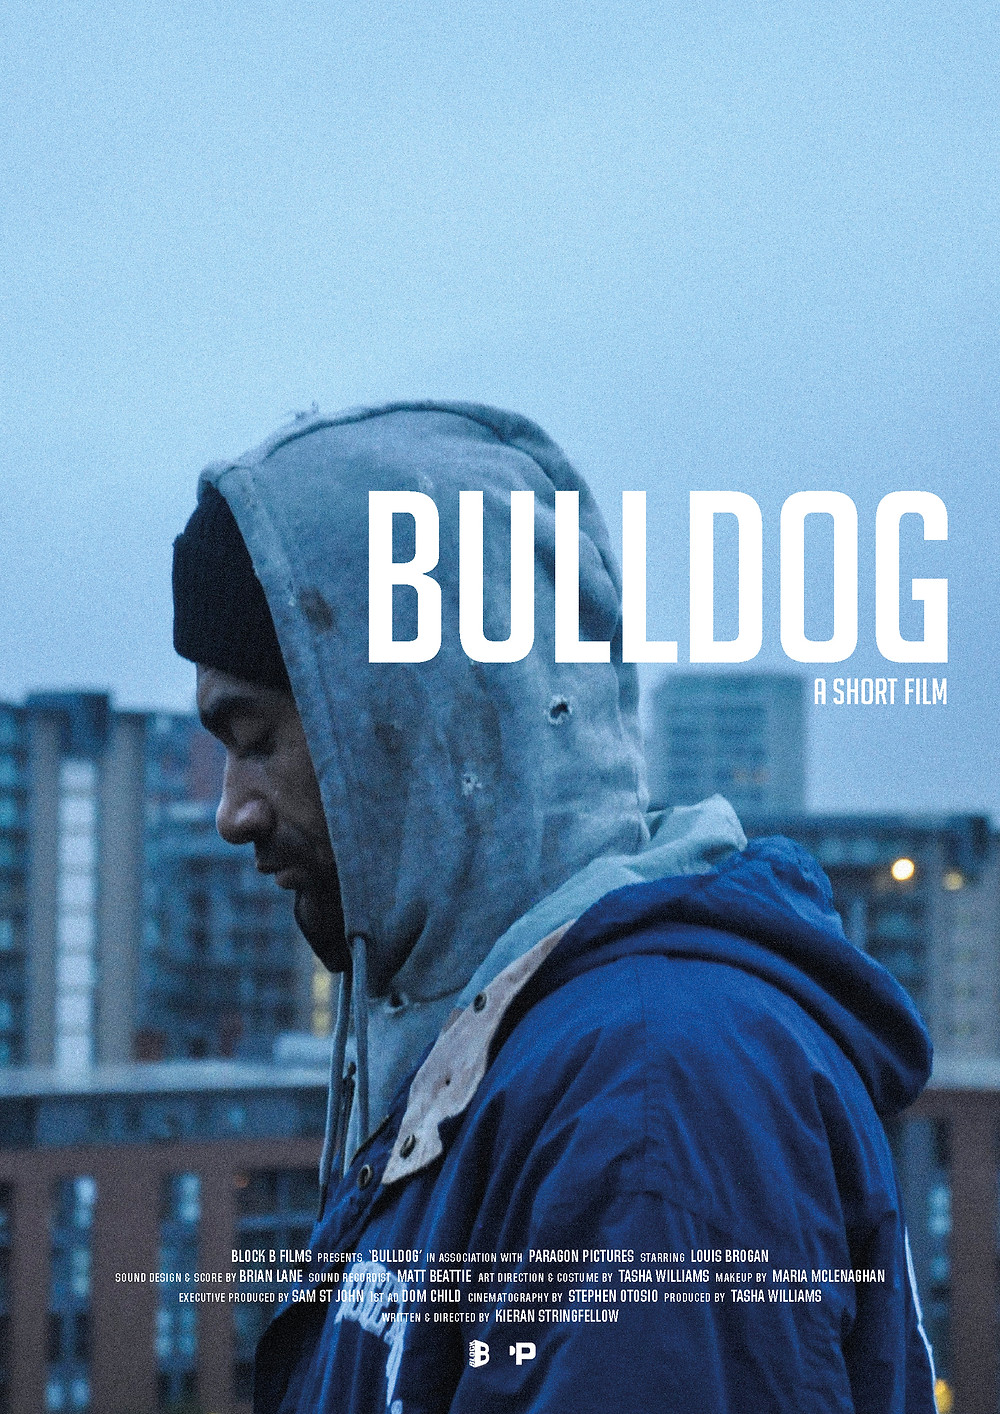 Poster for Bulldog showing protagonist.